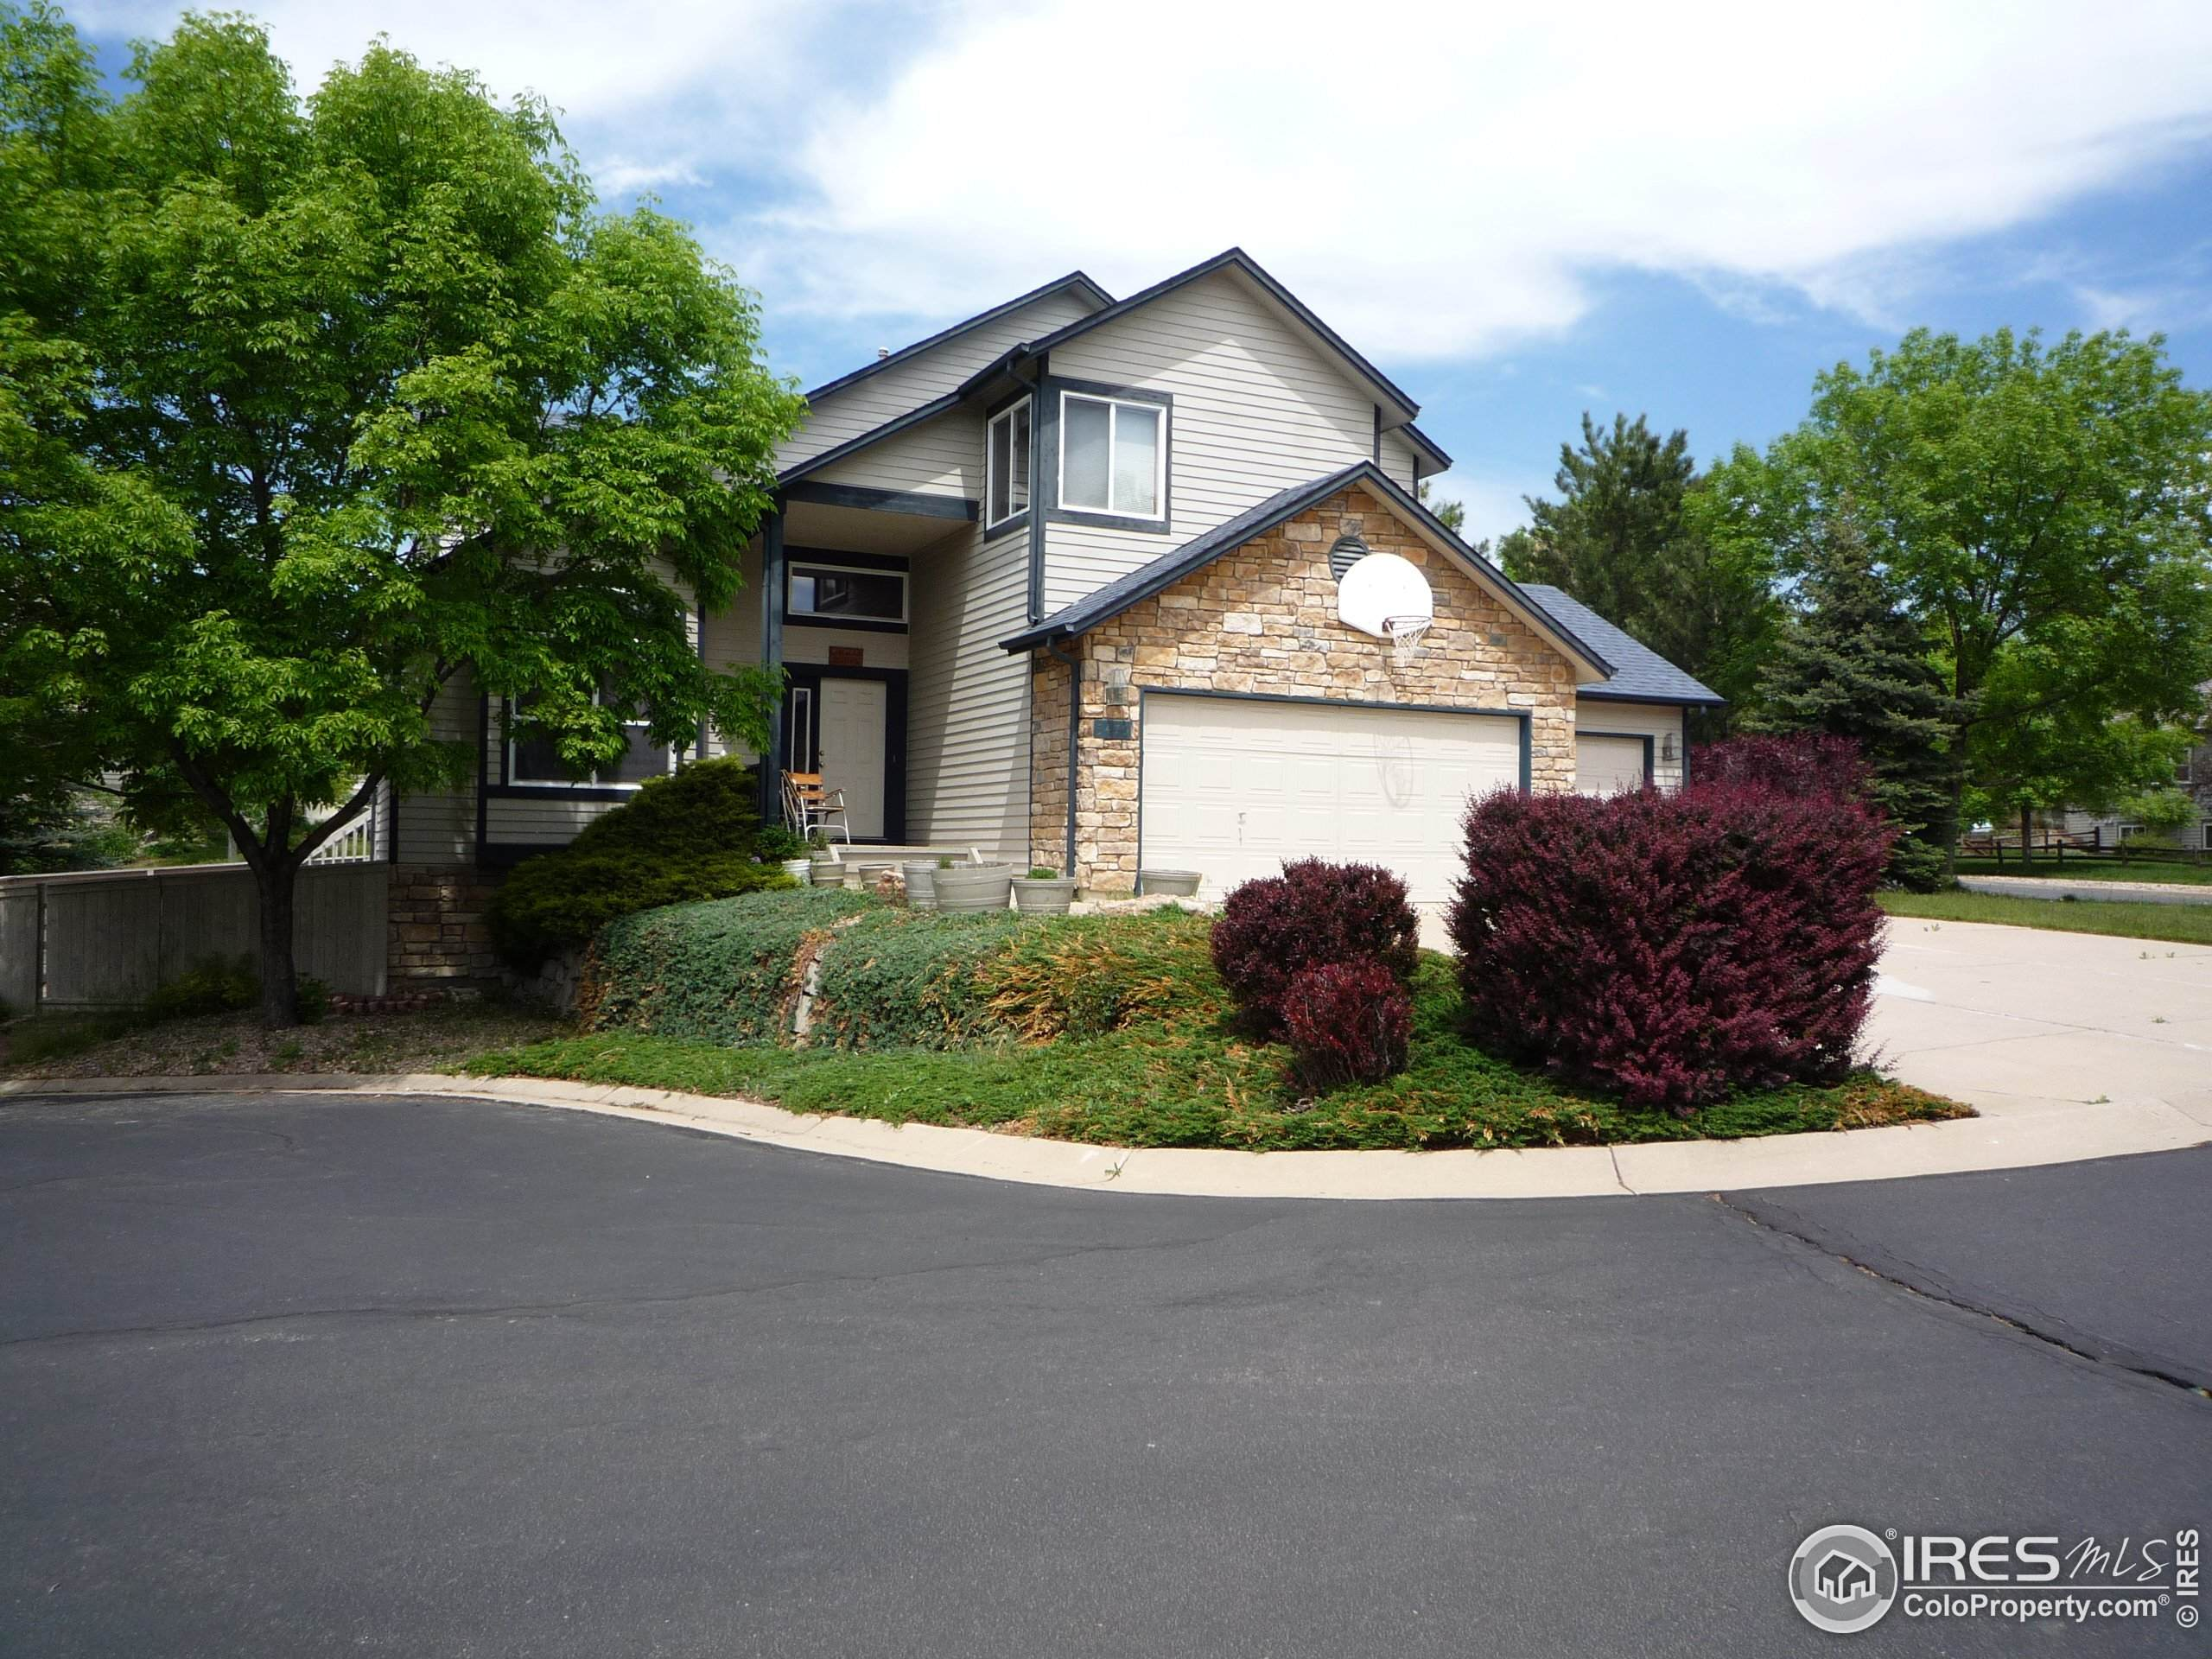 44129 Priddy Ave, Pierce, CO 80650 (#920214) :: The Margolis Team